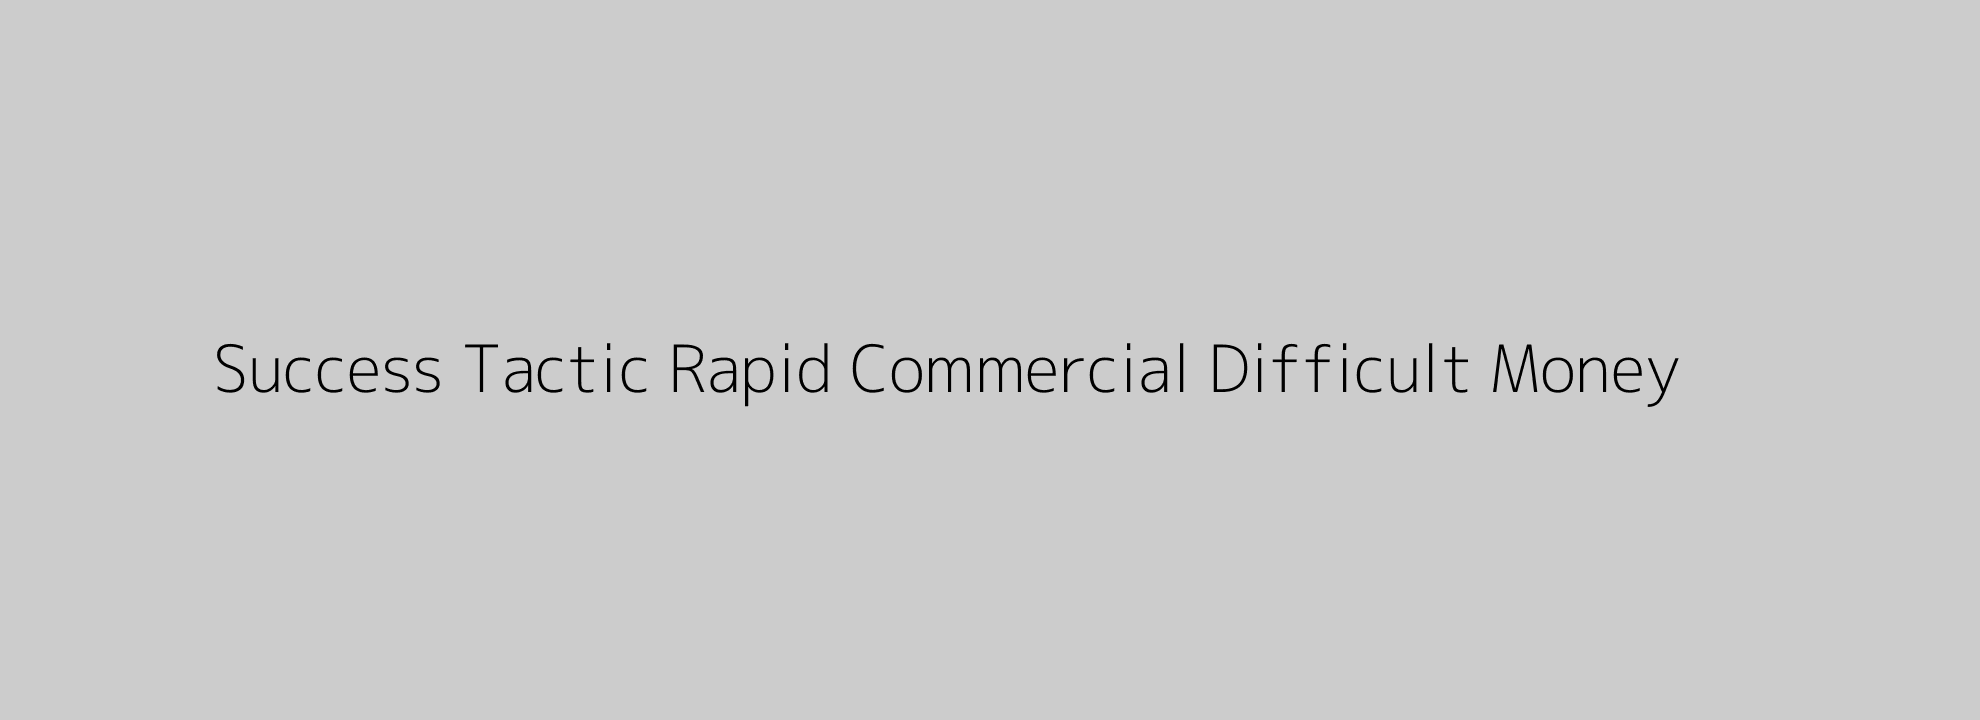 Success Tactic Rapid Commercial Difficult Money